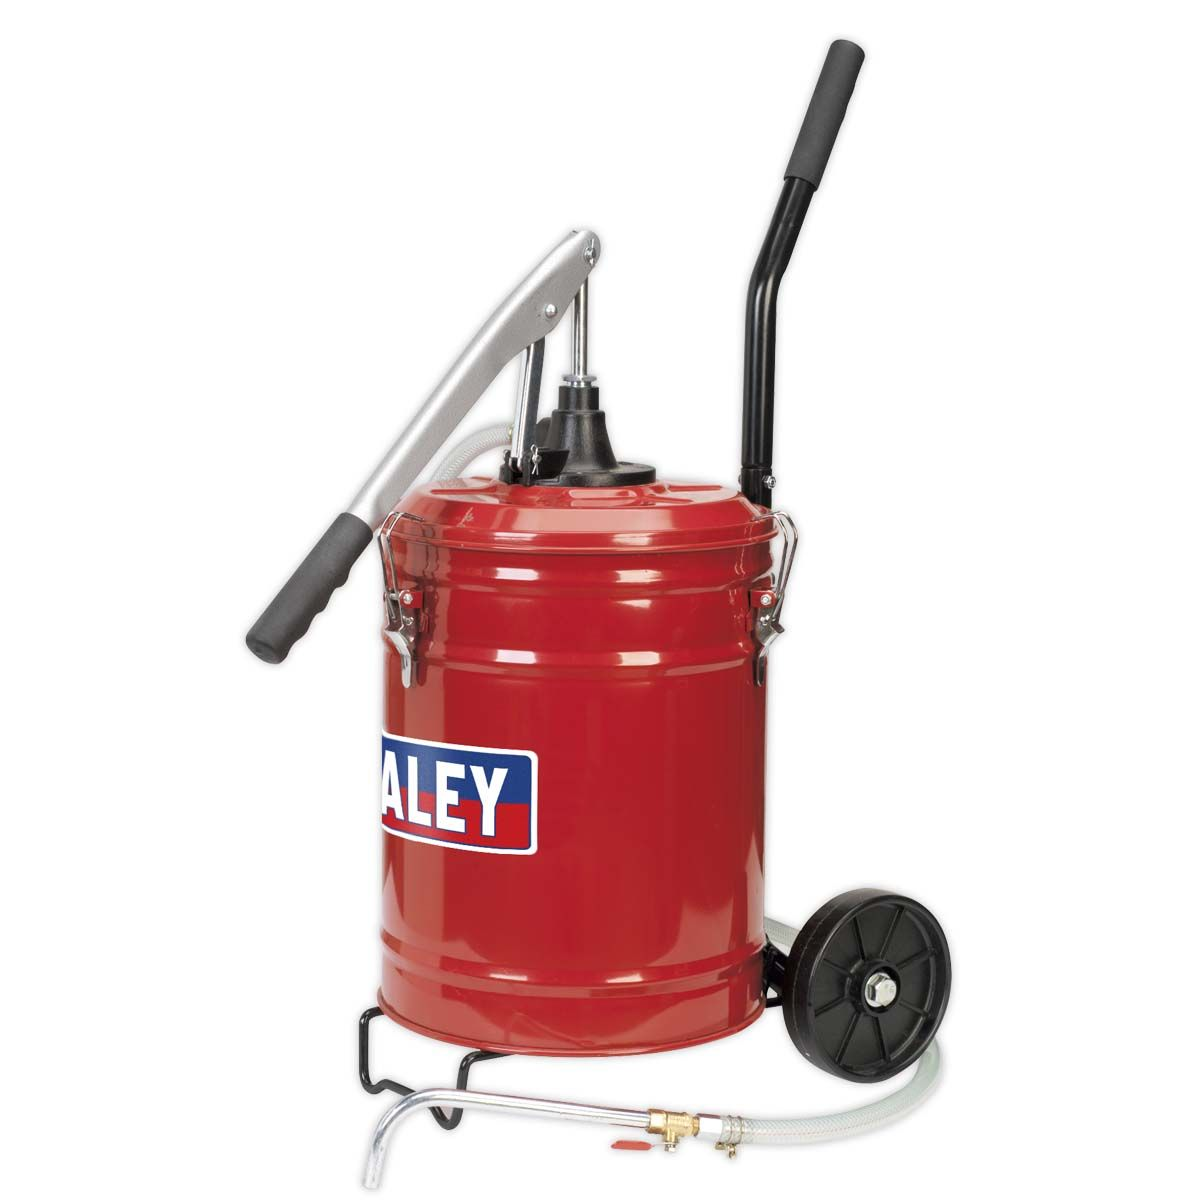 Sealey Gear Oil Dispensing Unit 20L Mobile